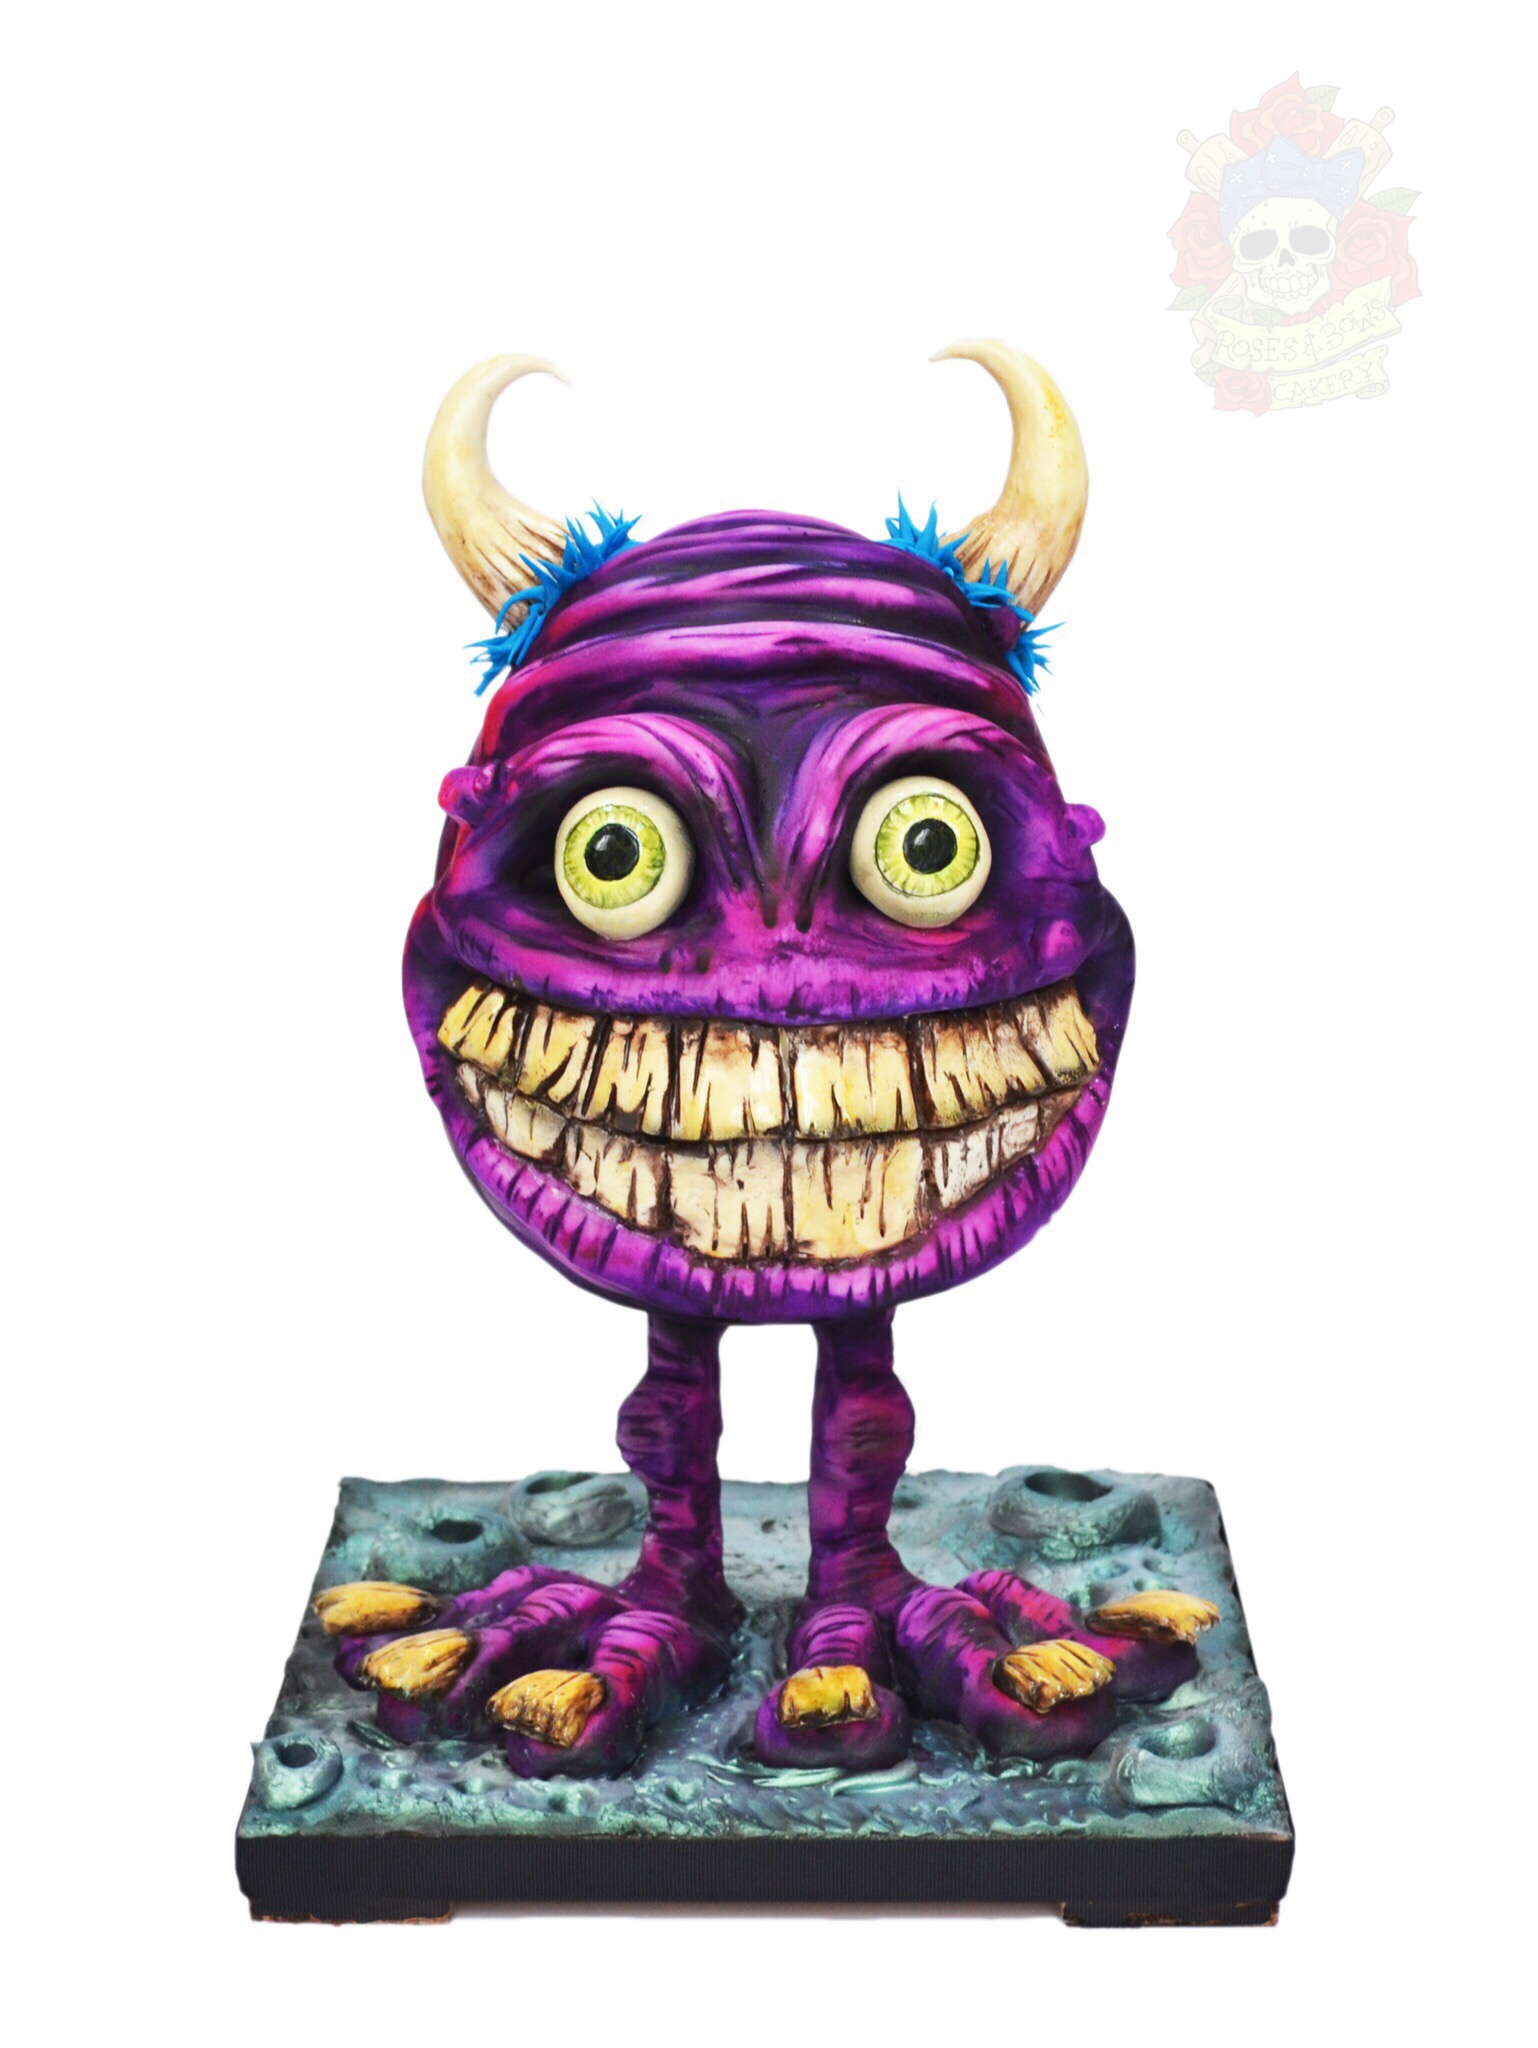 Purple fondant standing monster cake